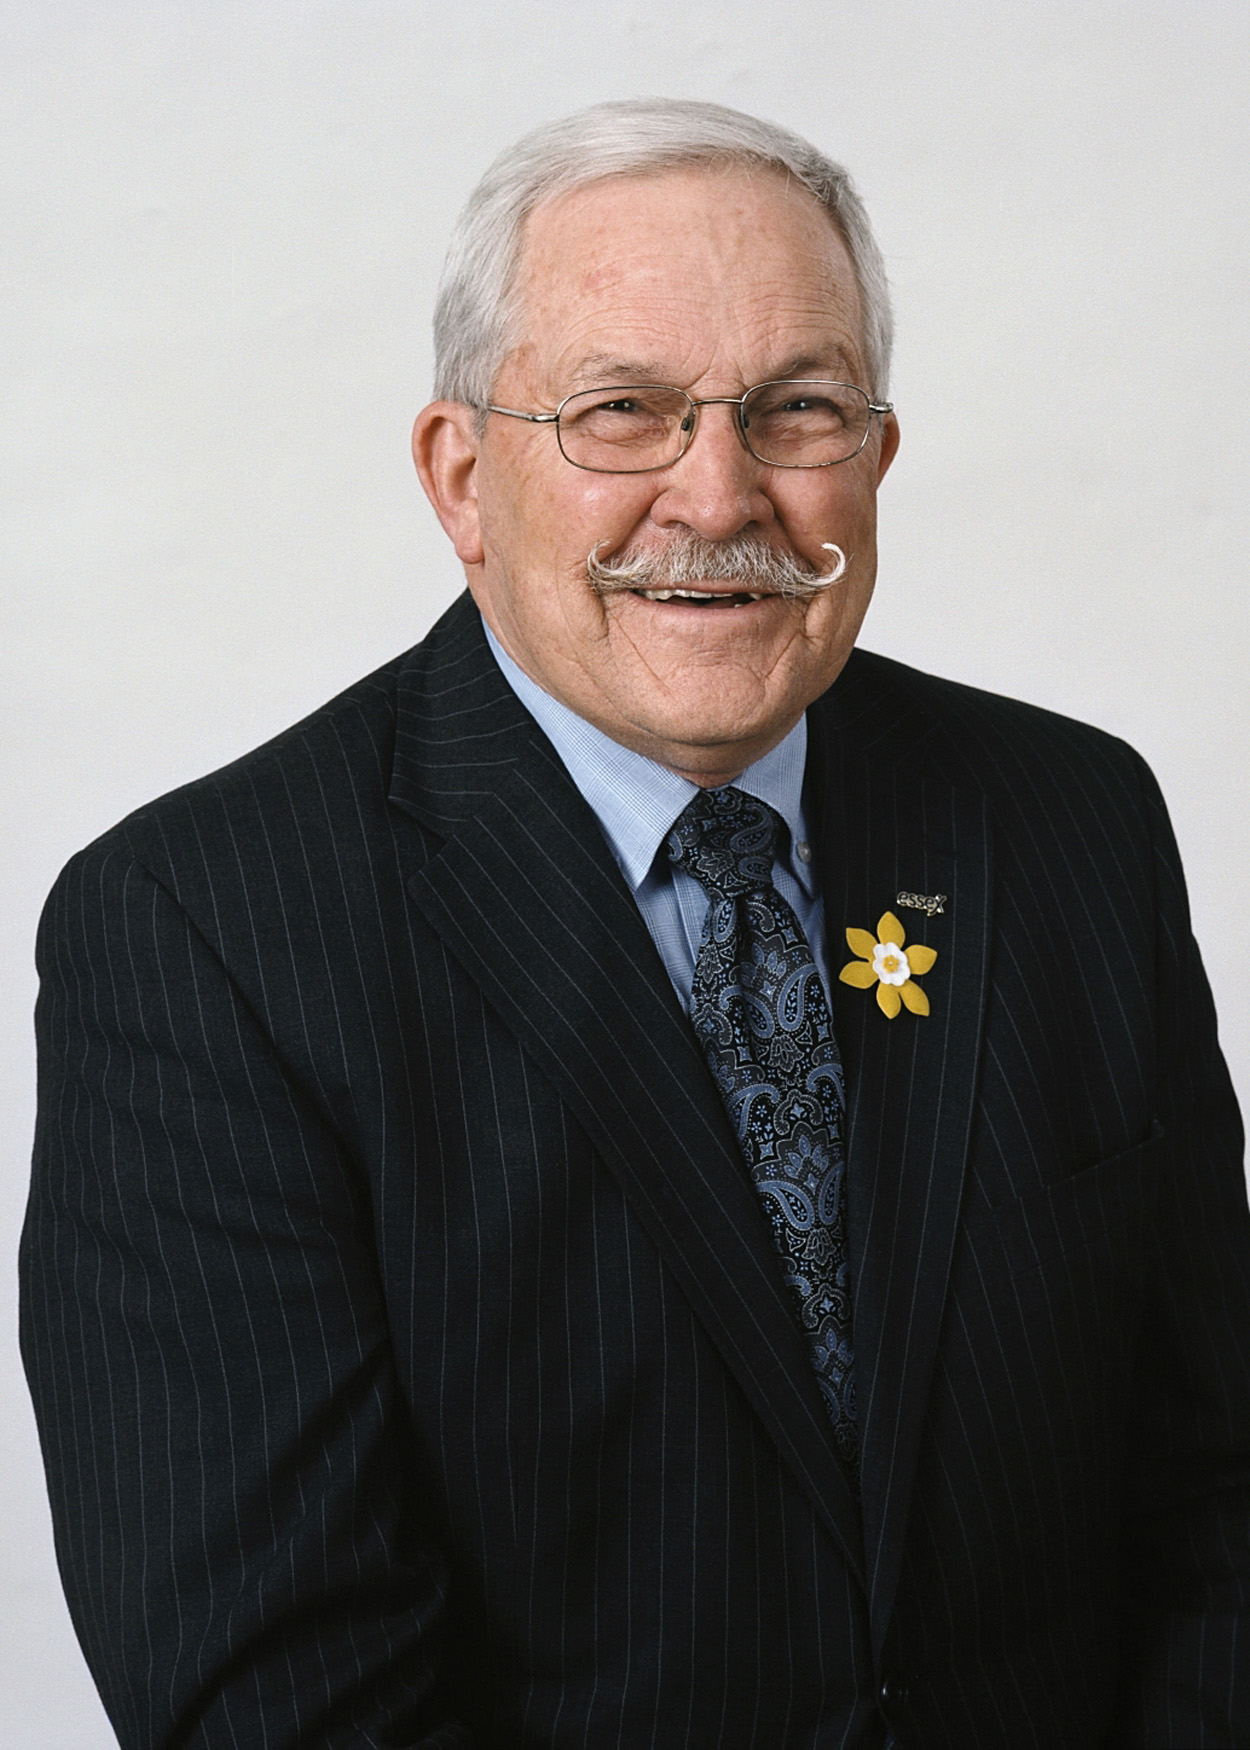 Ron McDermott – County Representative